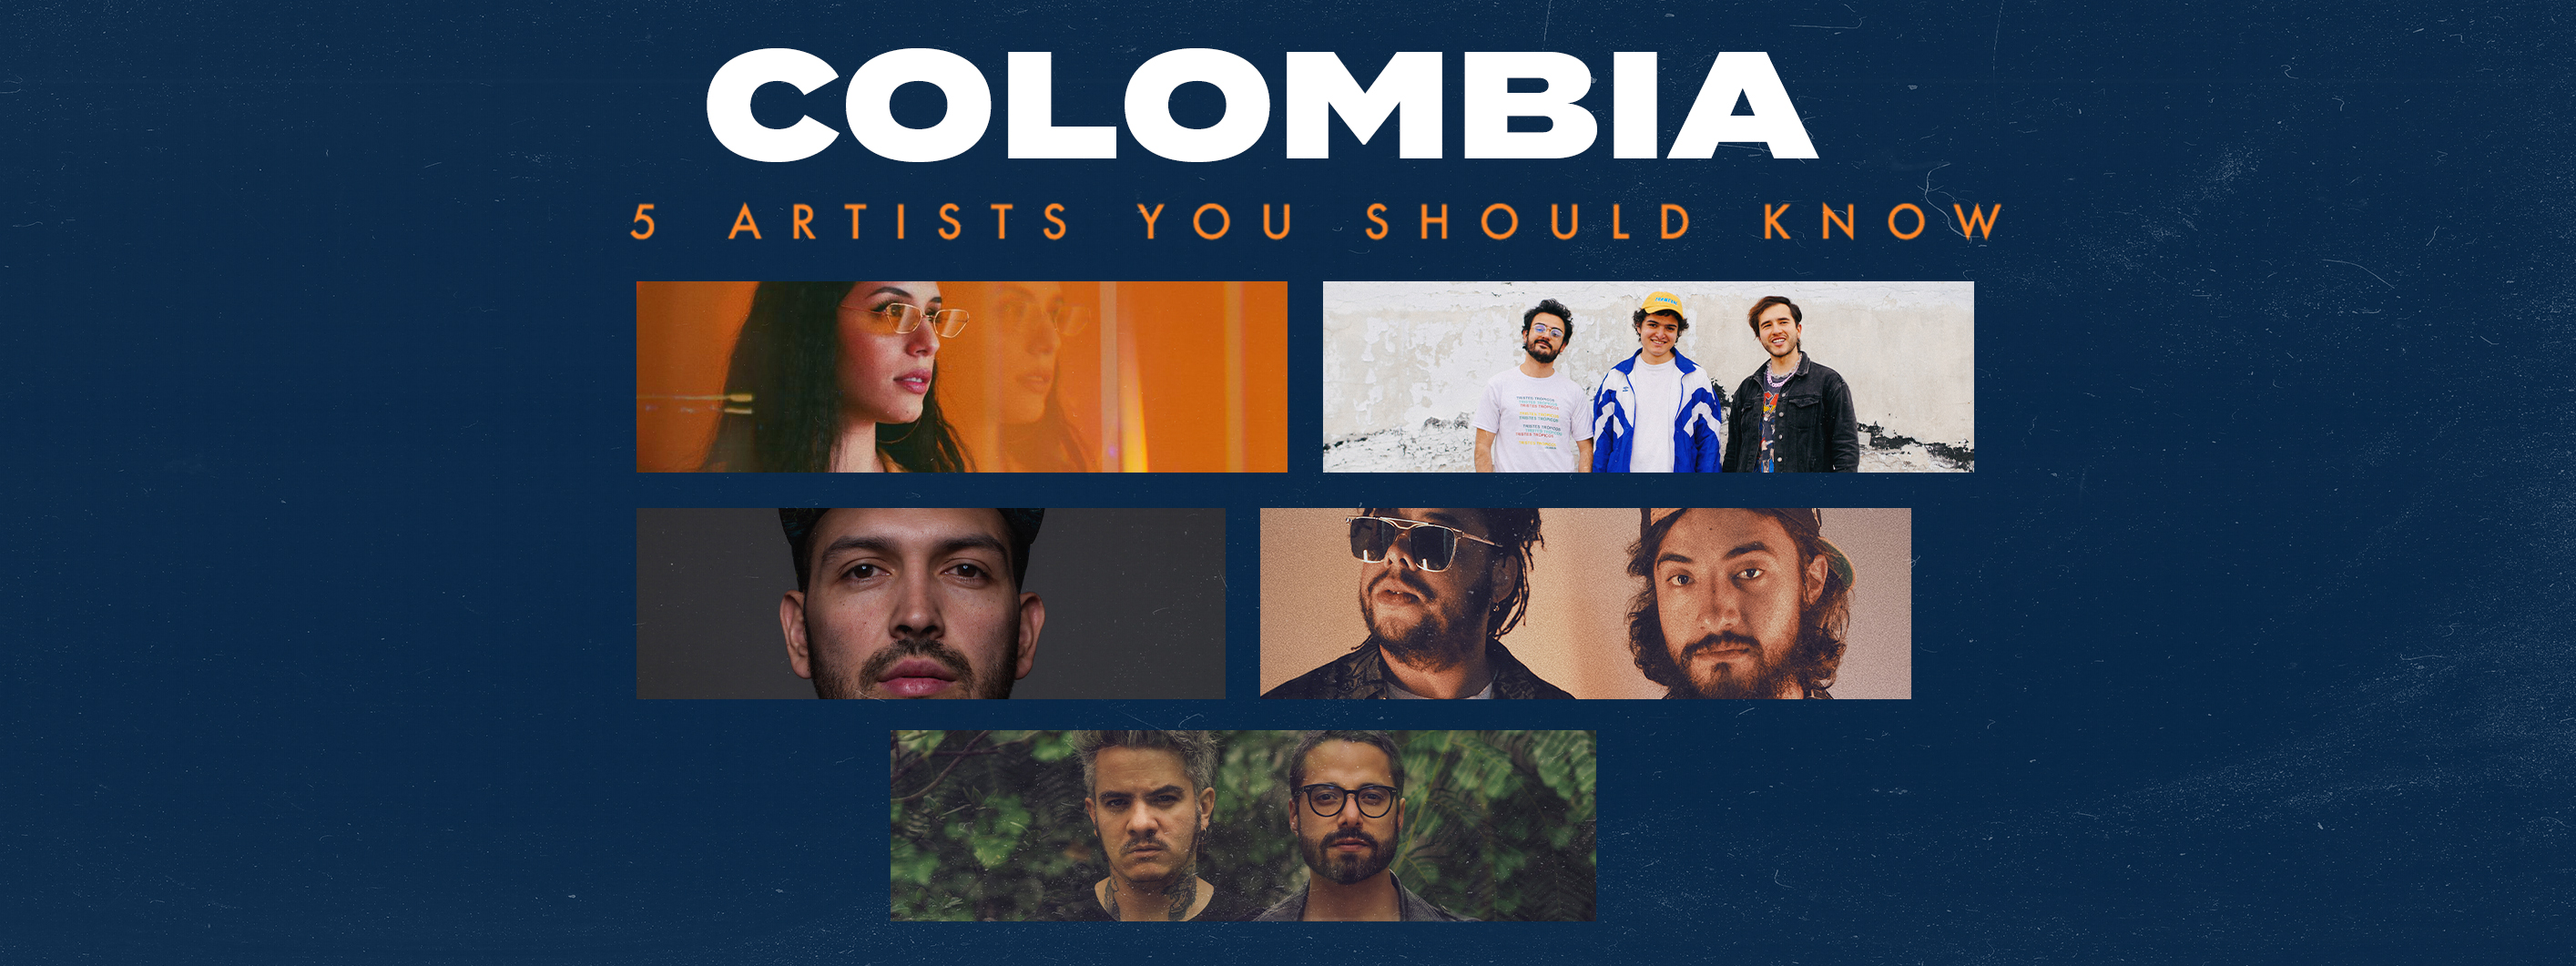 5 Artists You Should Know: Colombia